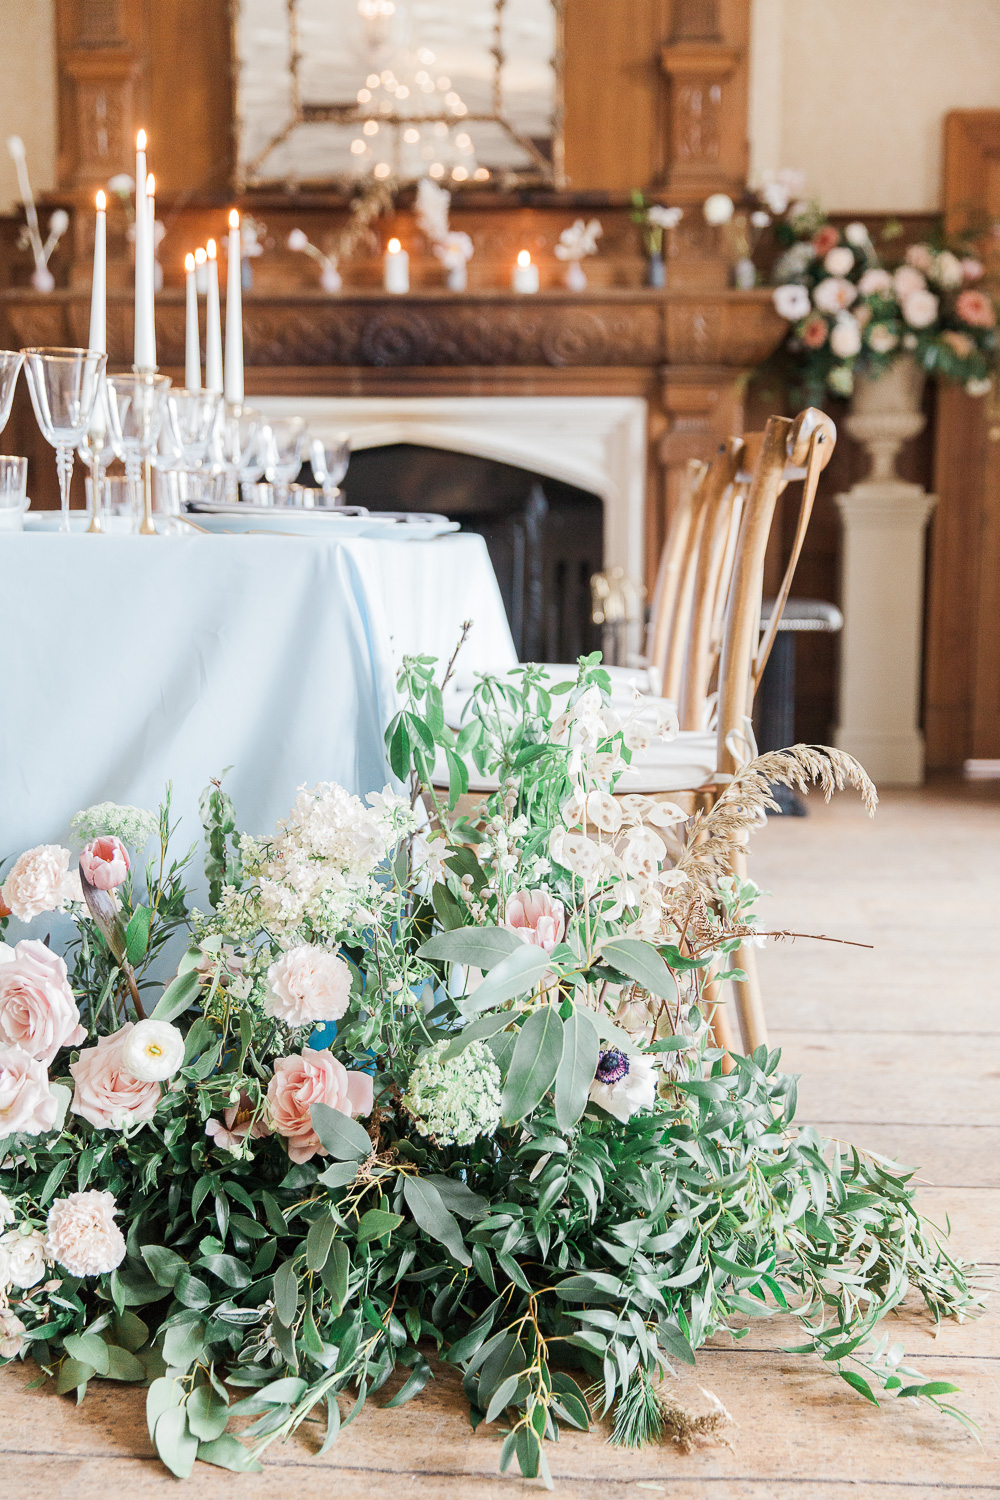 Wedding table with Spring flowers at Froyle Park wedding venue in the UK